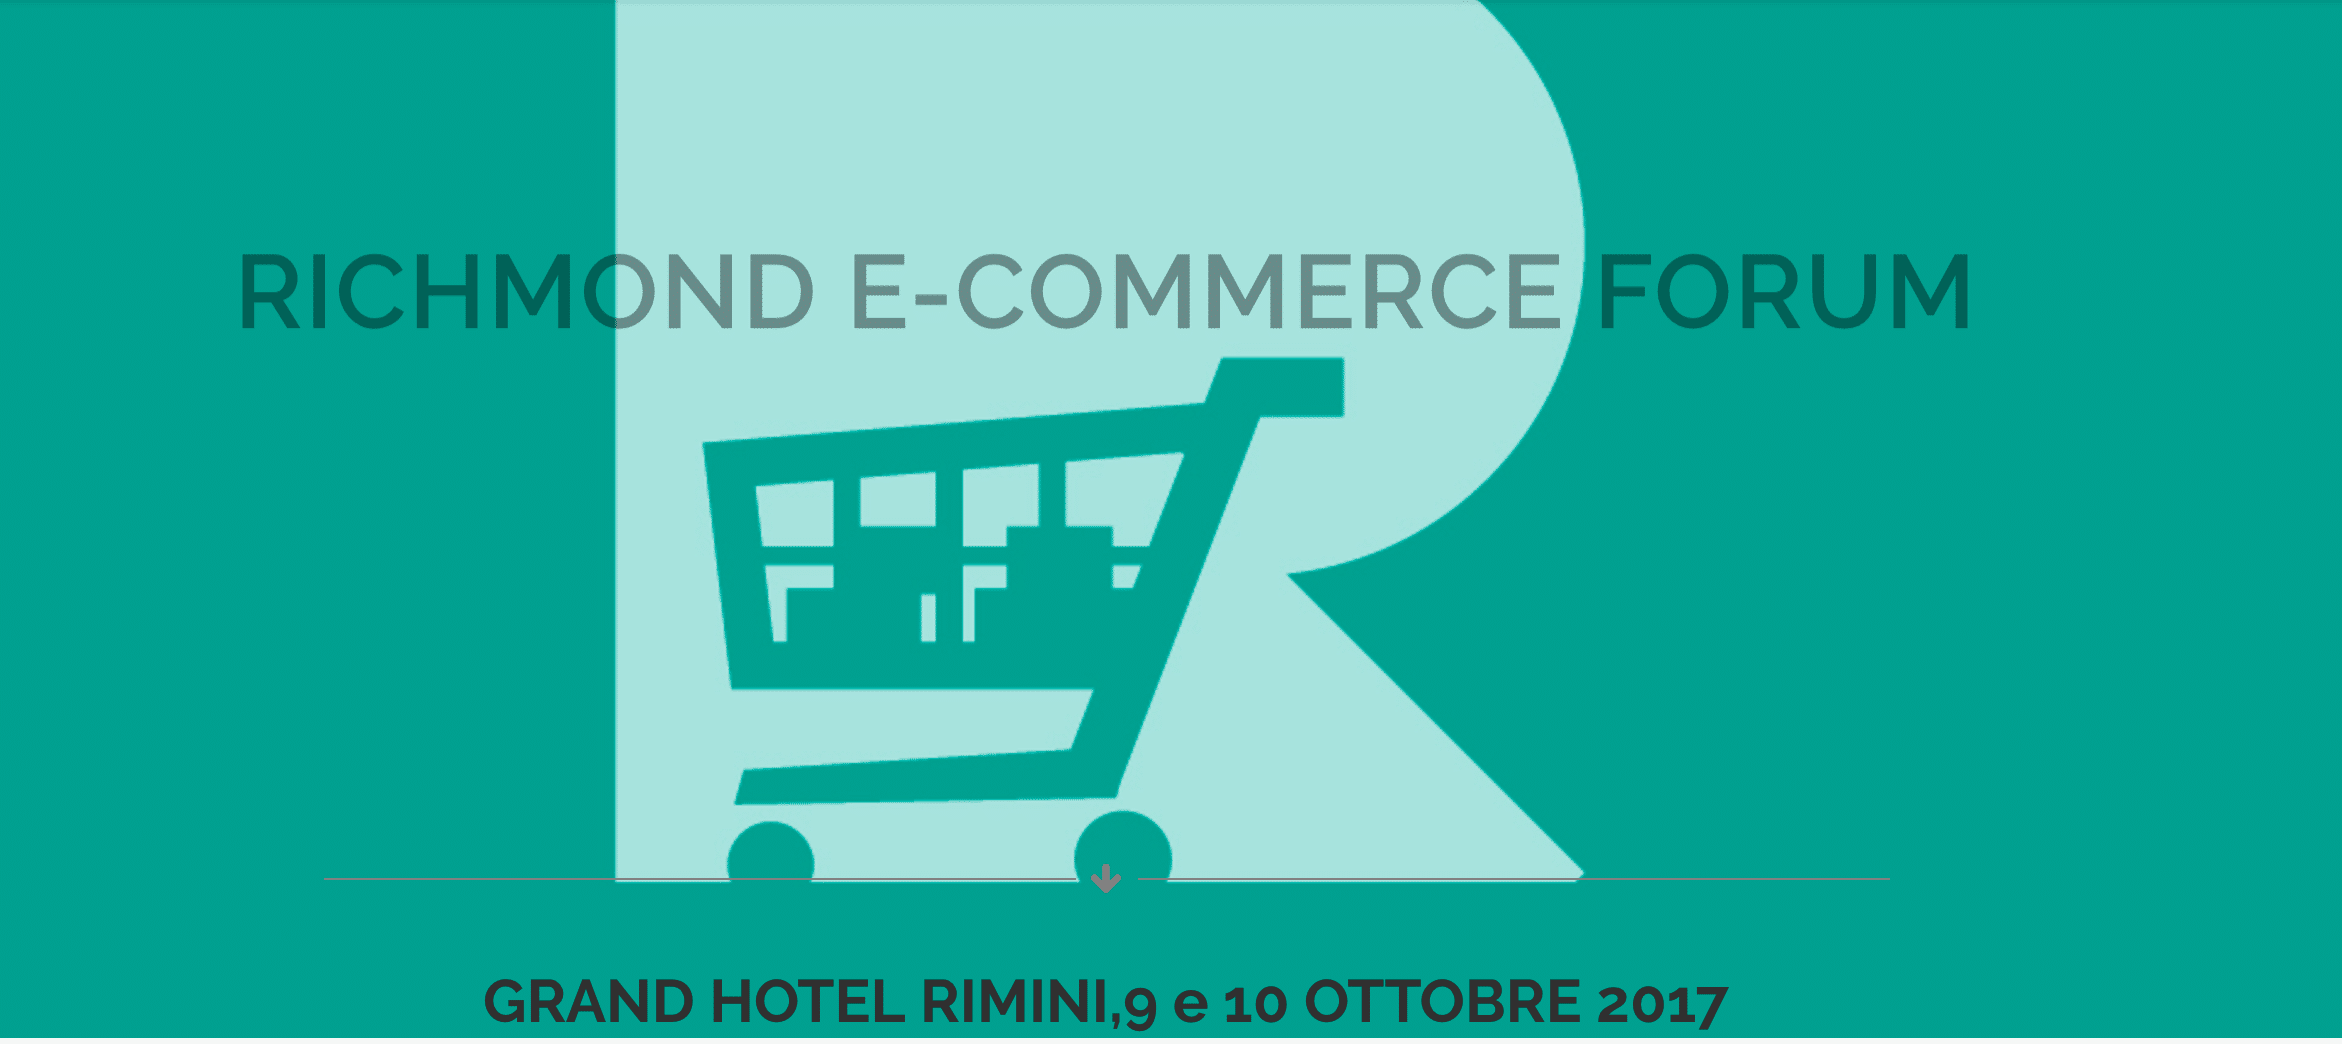 richmond ecommerce forum